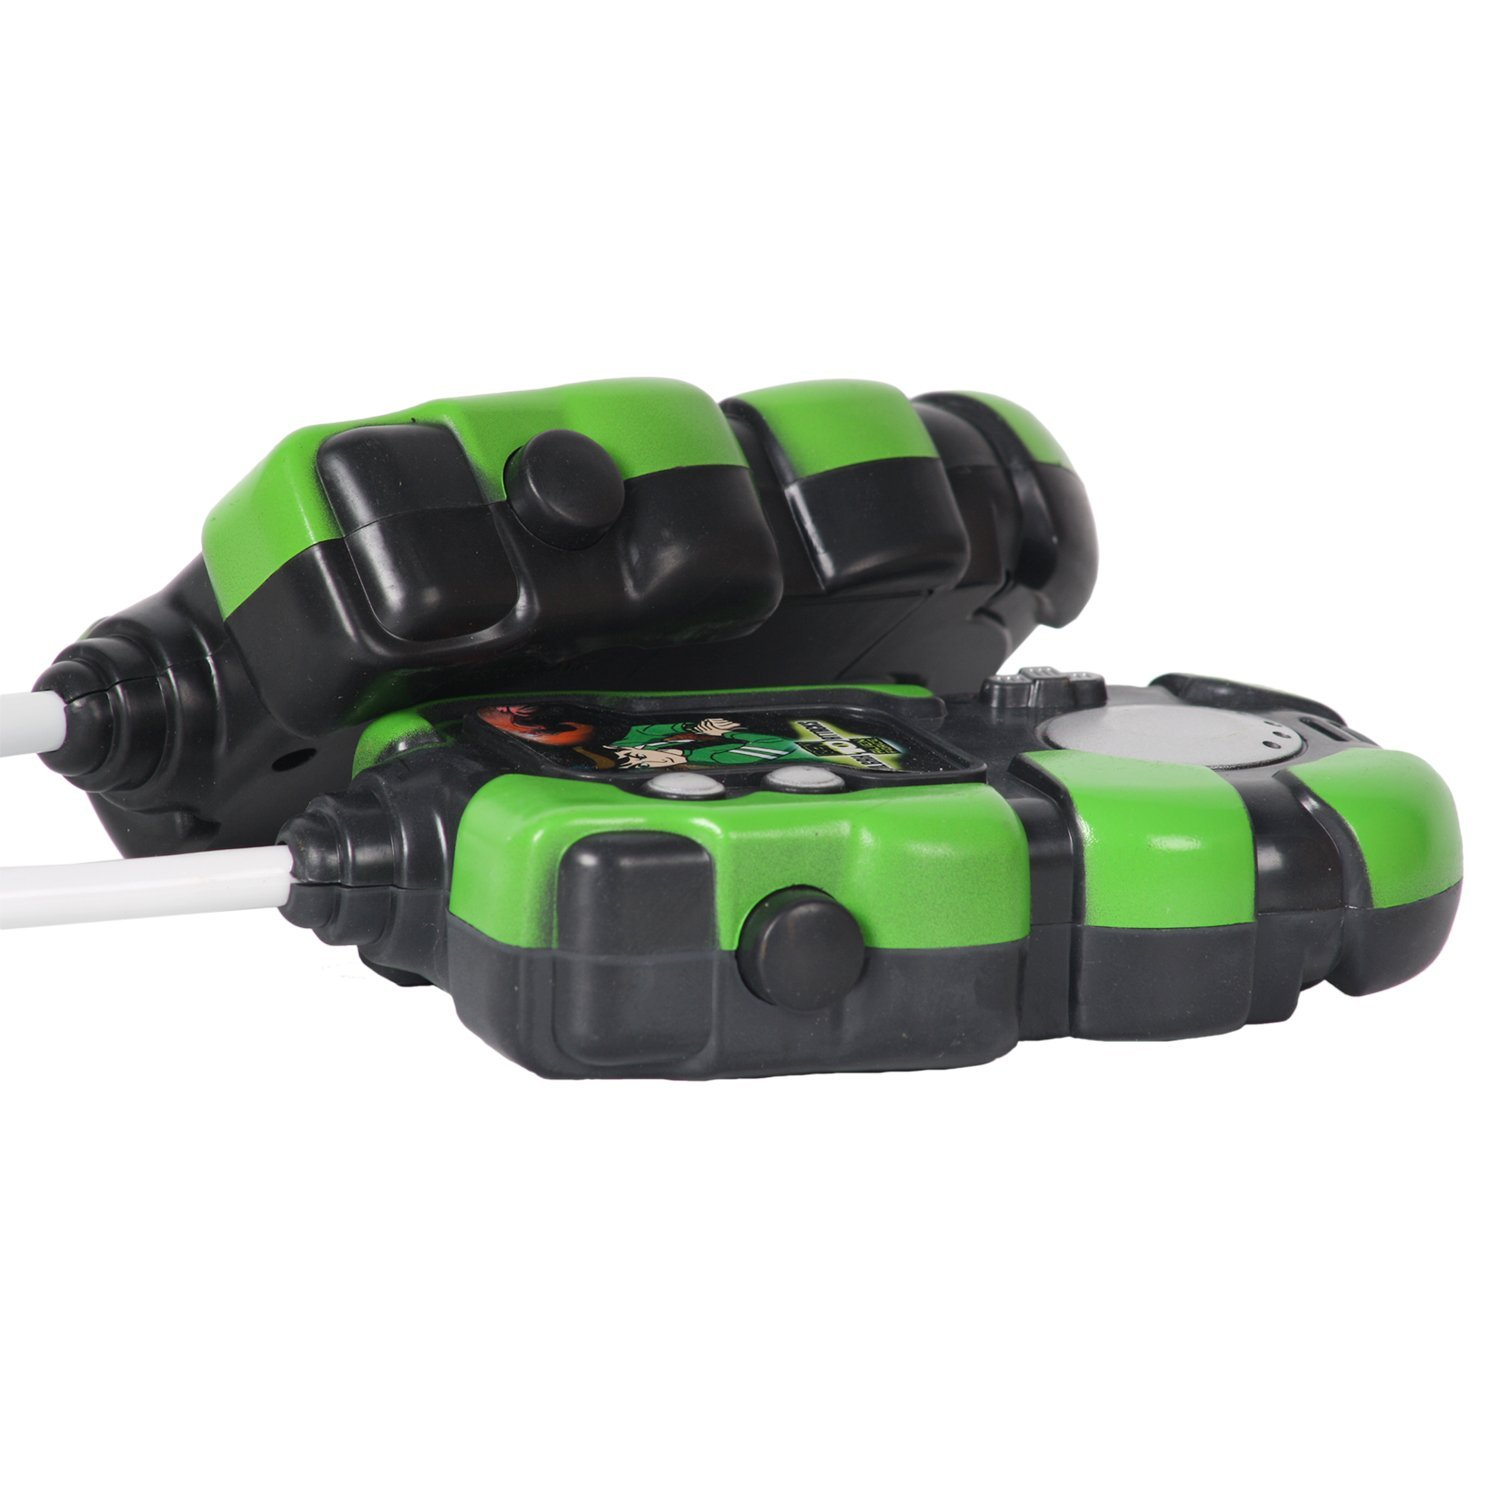 Huang Cheng Toys Alien Force Kids Handheld Walkie-Talkie Pack of 2 Communication Toy by Huang Cheng Toys (Image #3)